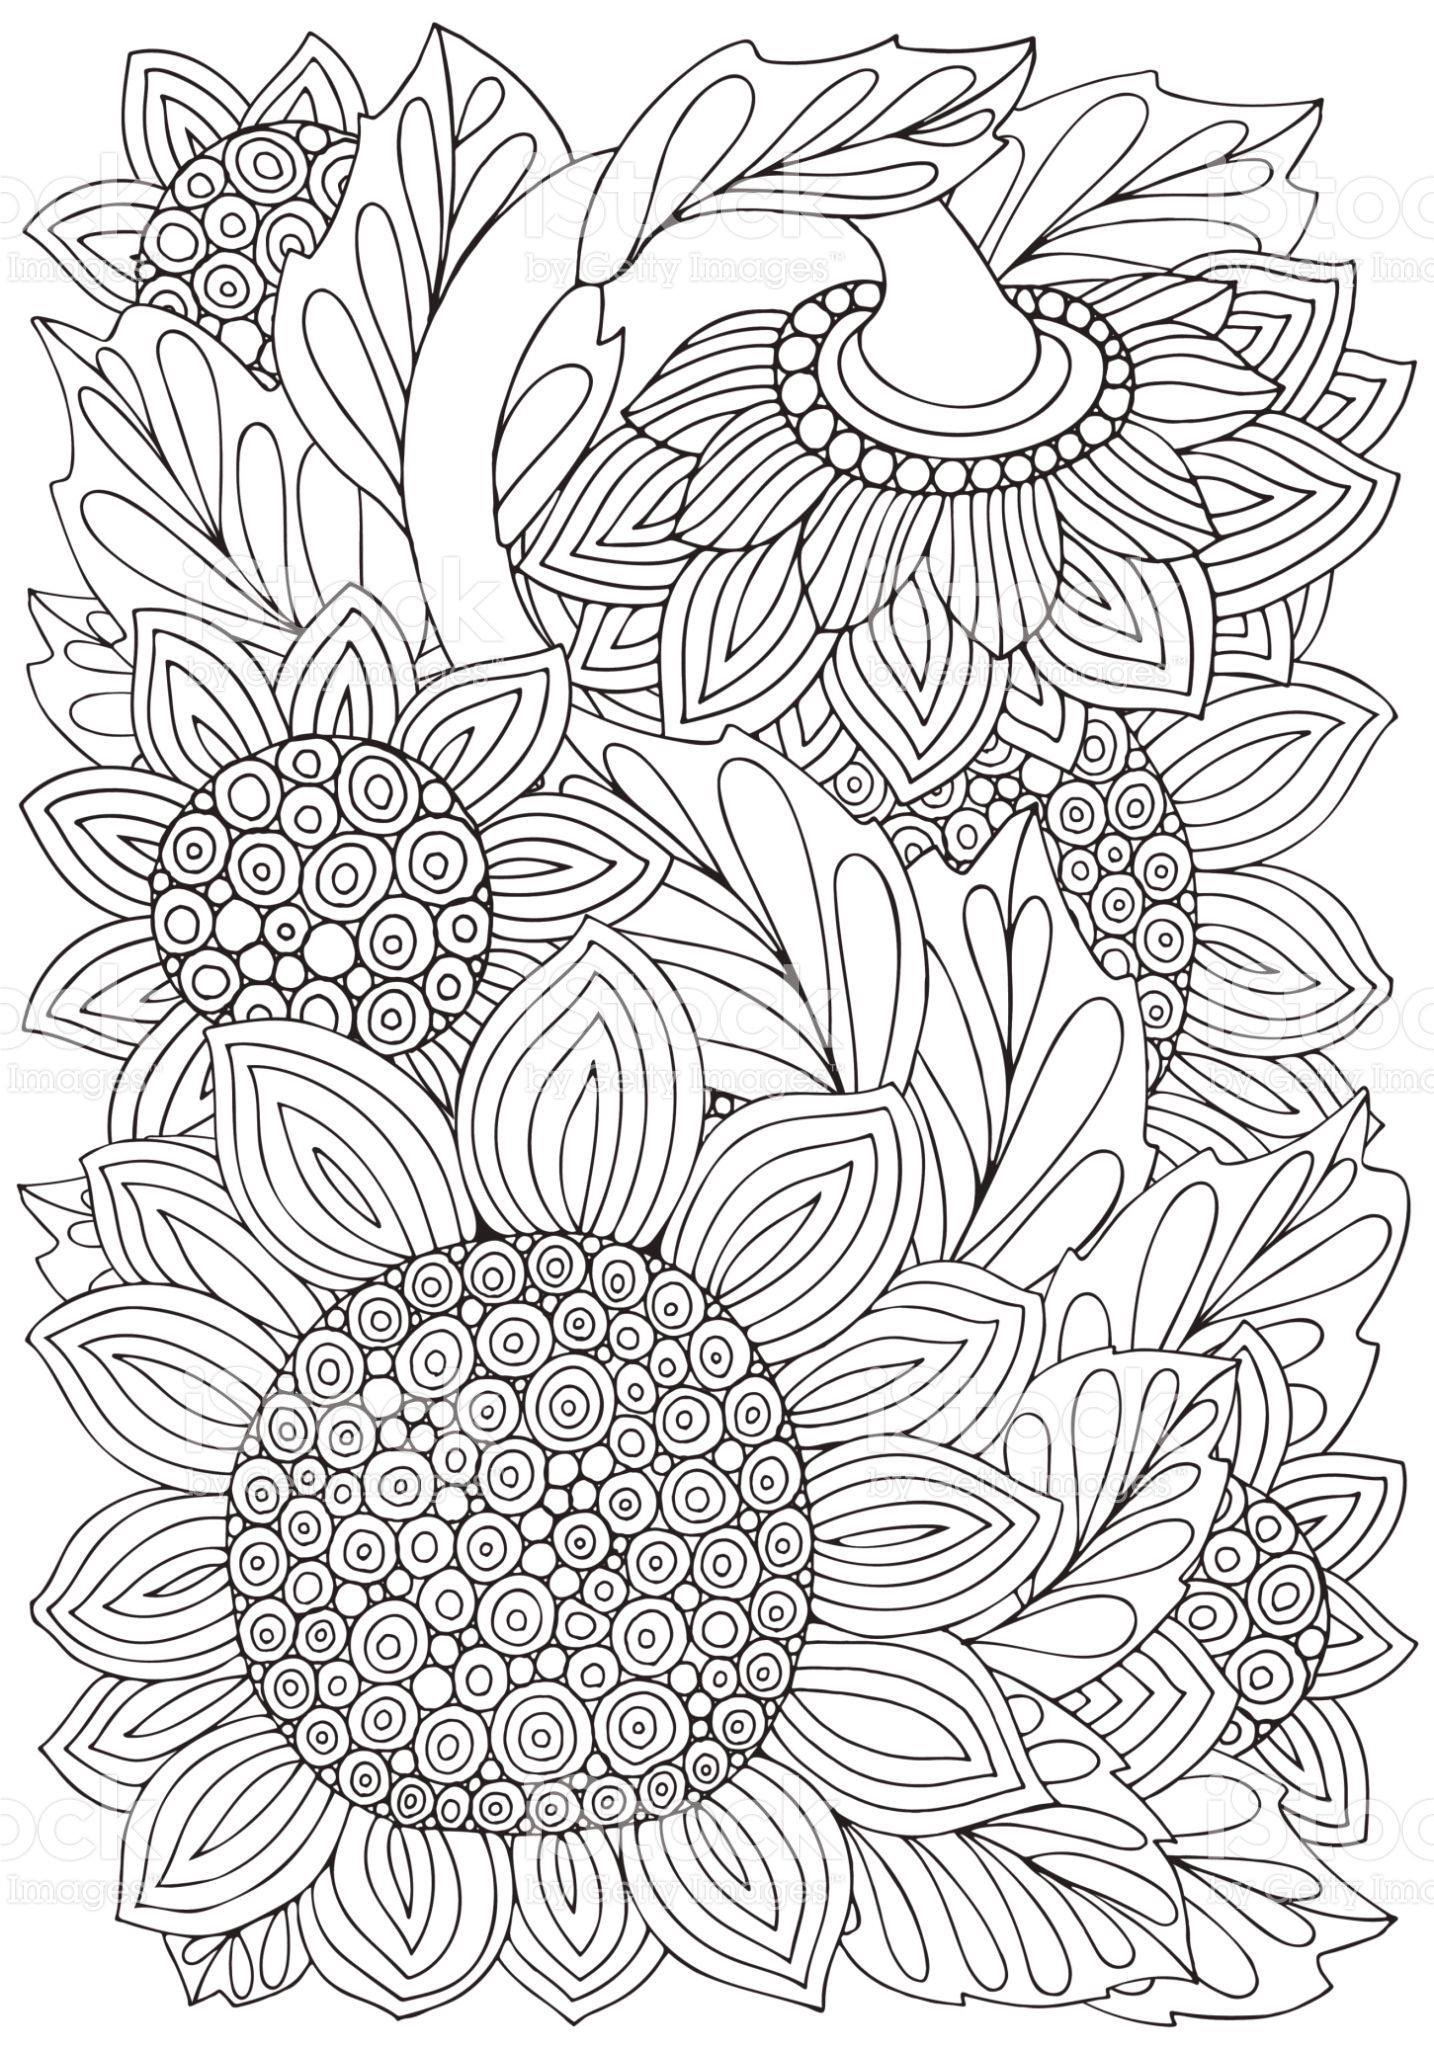 Coloring Book Page With Sunflowers And Leaf In Doodle Style Black